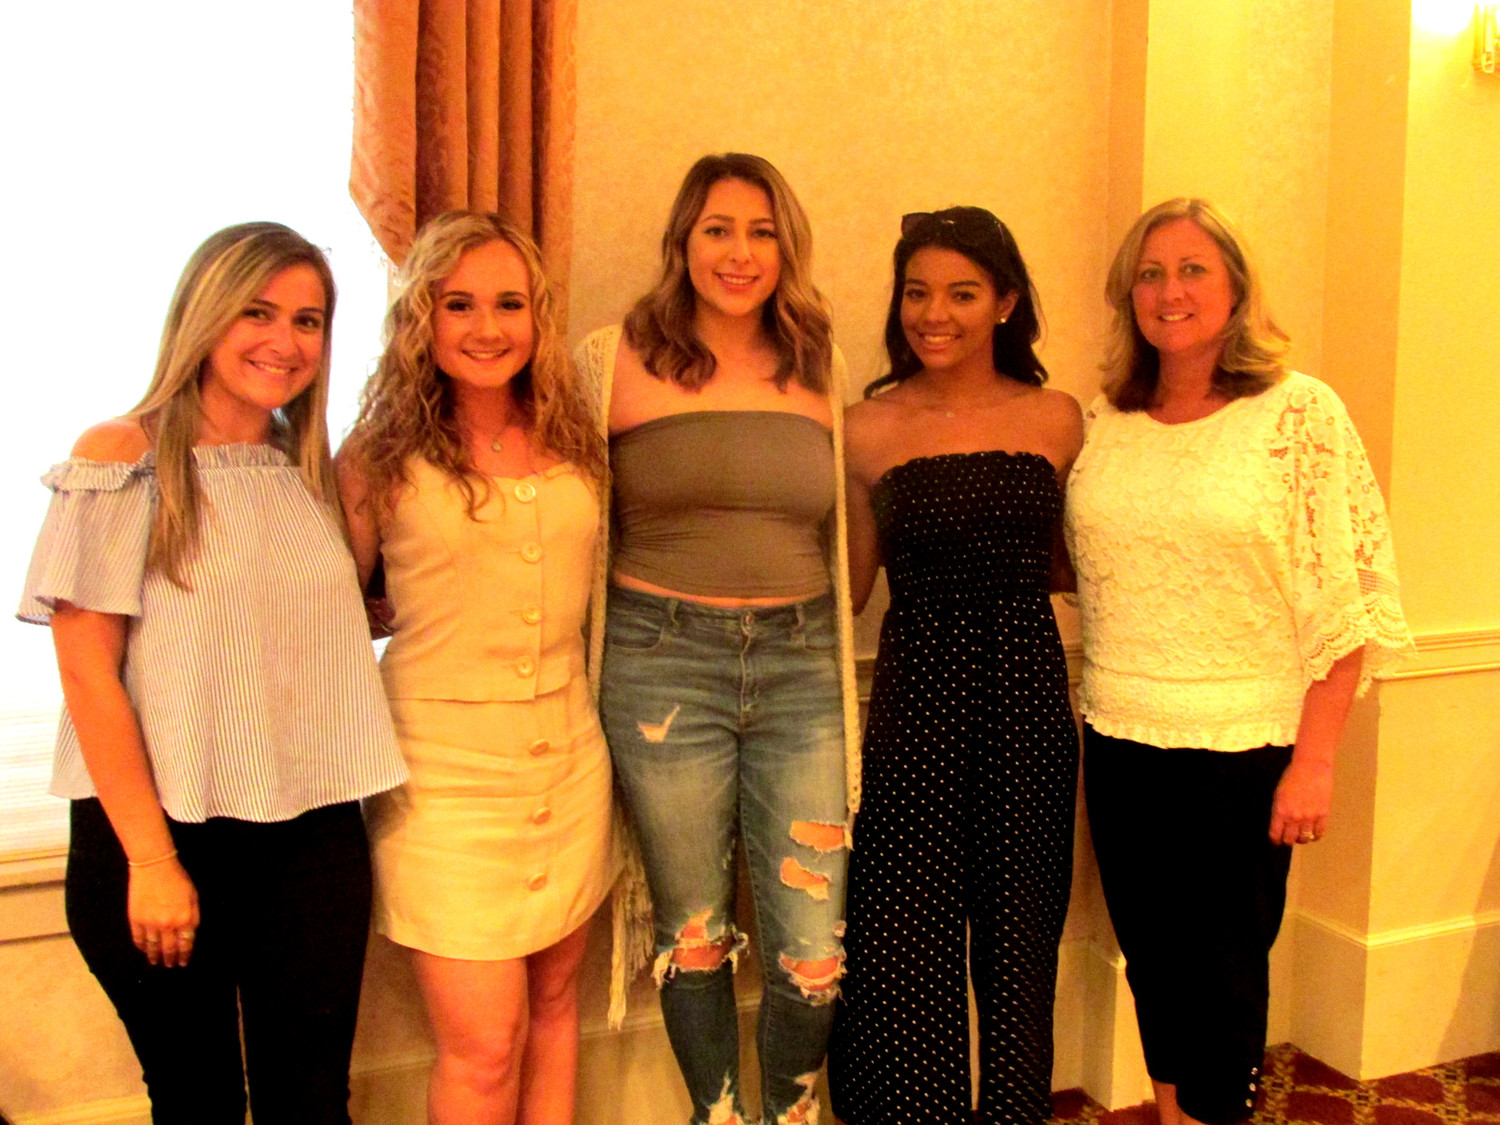 PARILLO'S PACK: Tiffani Parillo (left), assistant cheerleading coach at JHS and her mother Susan Parillo (right), the squad's head coach, join Captain Fallon Davis (second left) who received a scholar-athlete award and four-letter winners Jillian Quick and Daijah Bennet at Monday's special senior sendoff party. (Sun Rise photo by Pete Fontaine)